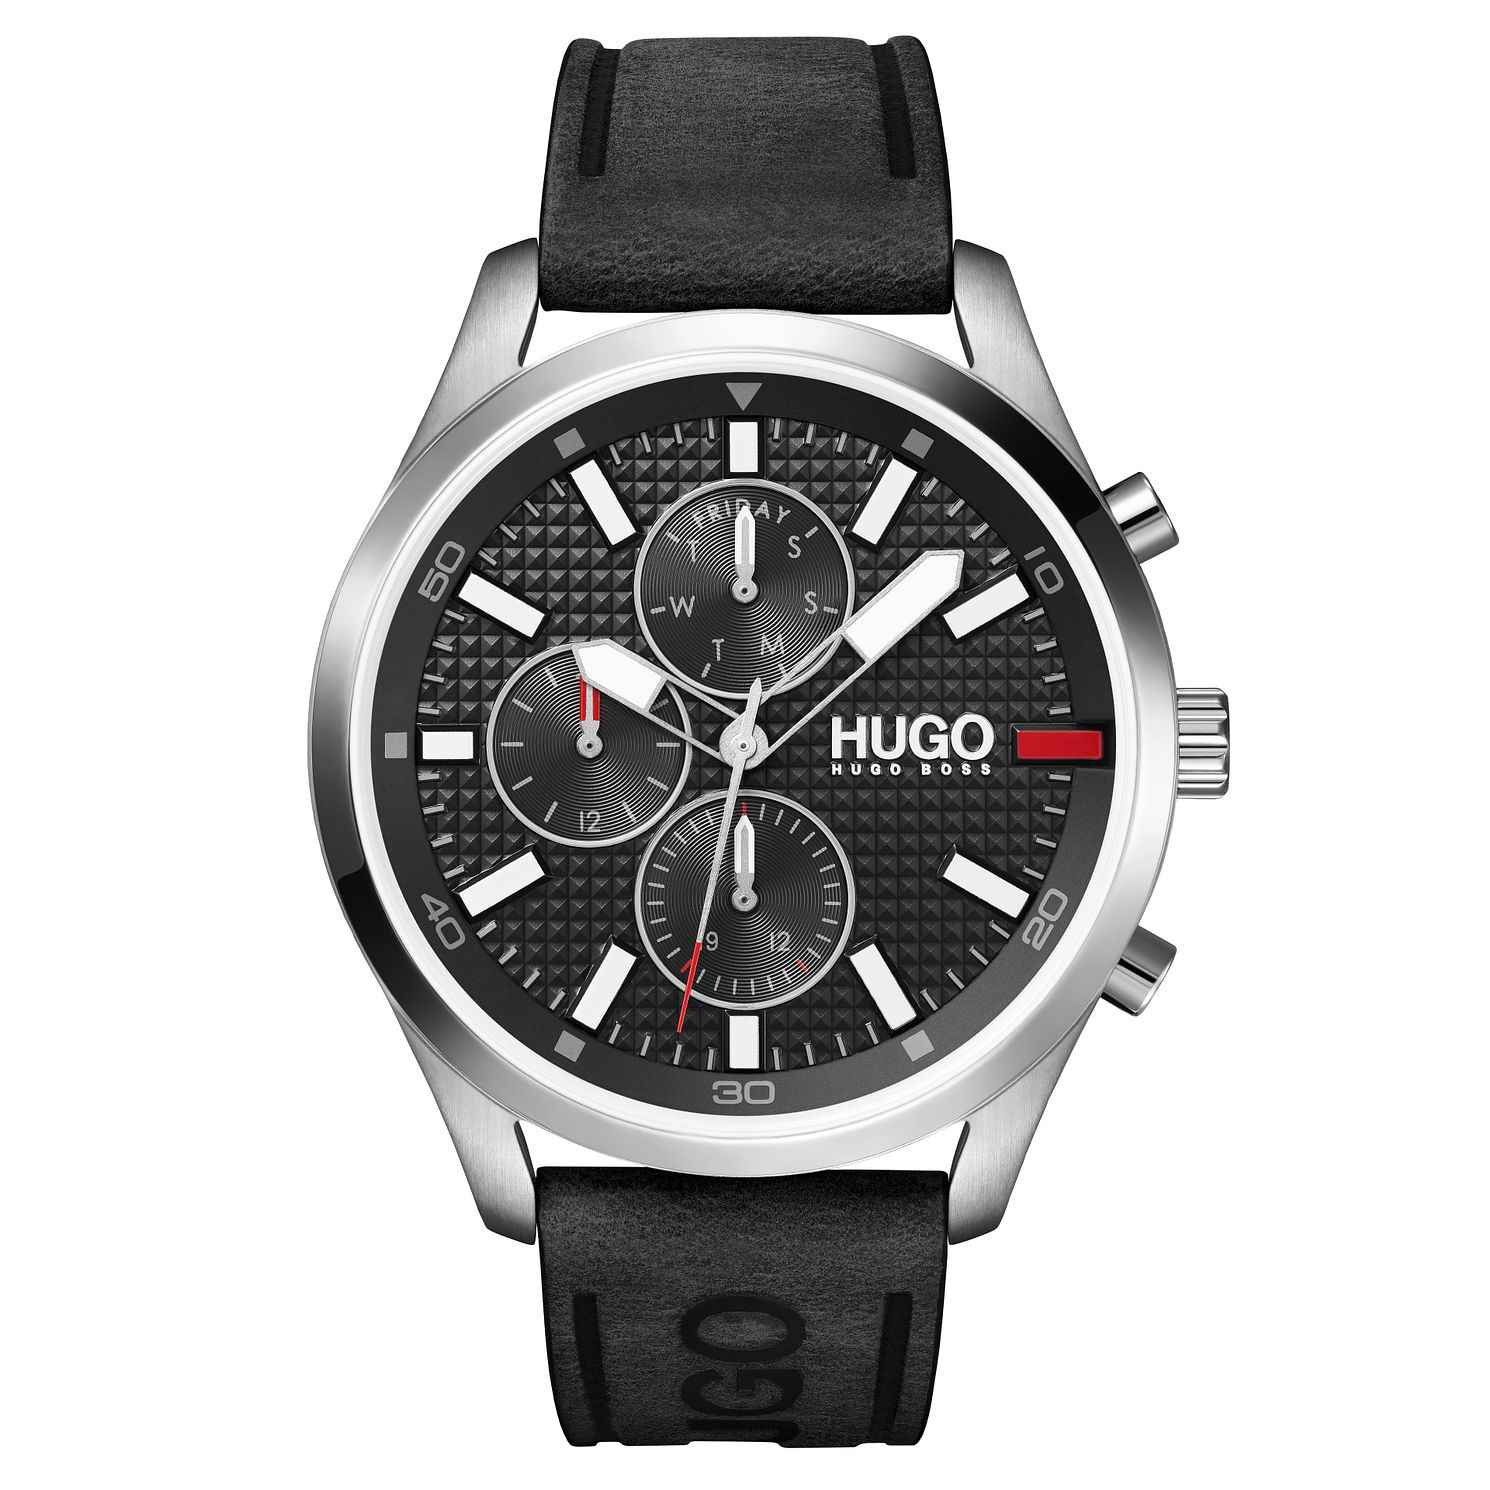 HUGO #CHASE Men's Black Leather Strap Watch - Product number 1017993